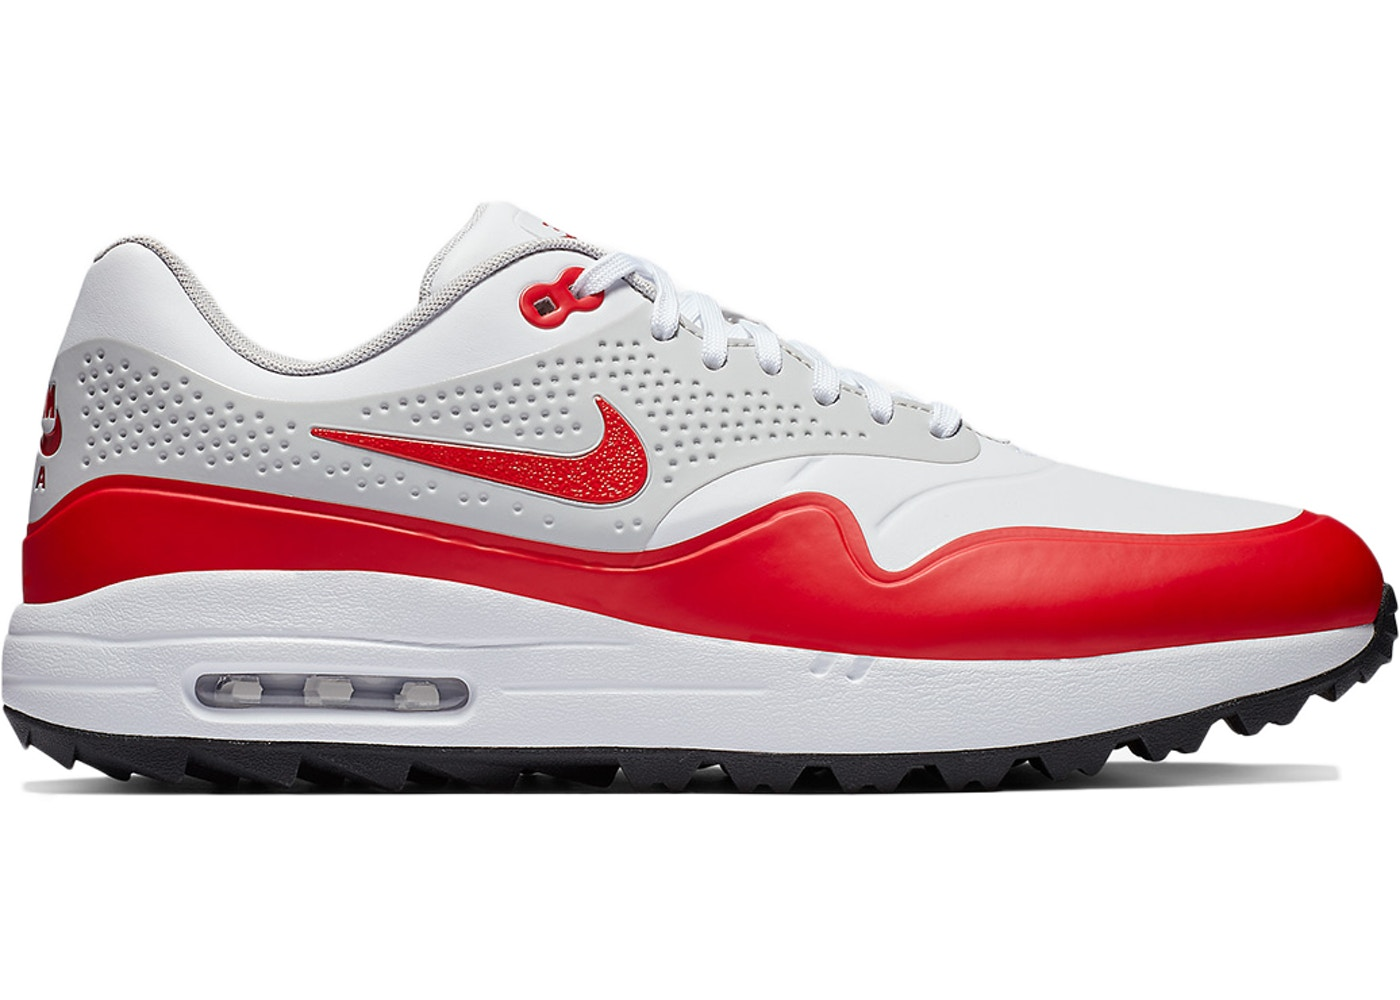 new styles d1308 cb0b7 Air Max 1 Golf Sport Red - AQ0863-100